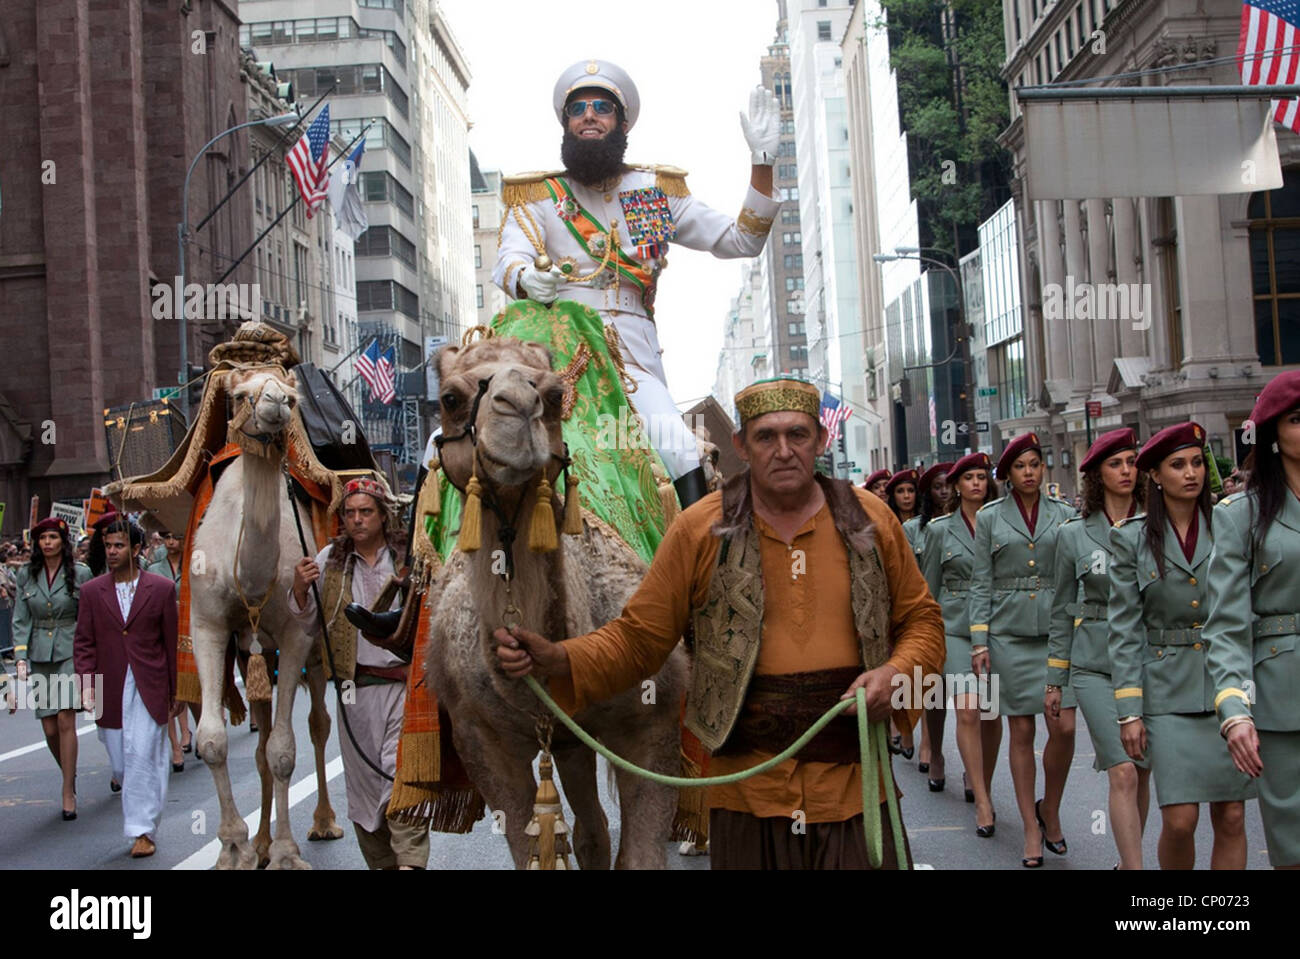 THE DICTATOR 2012 Paramount film with Sacha Baron Cohen - Stock Image